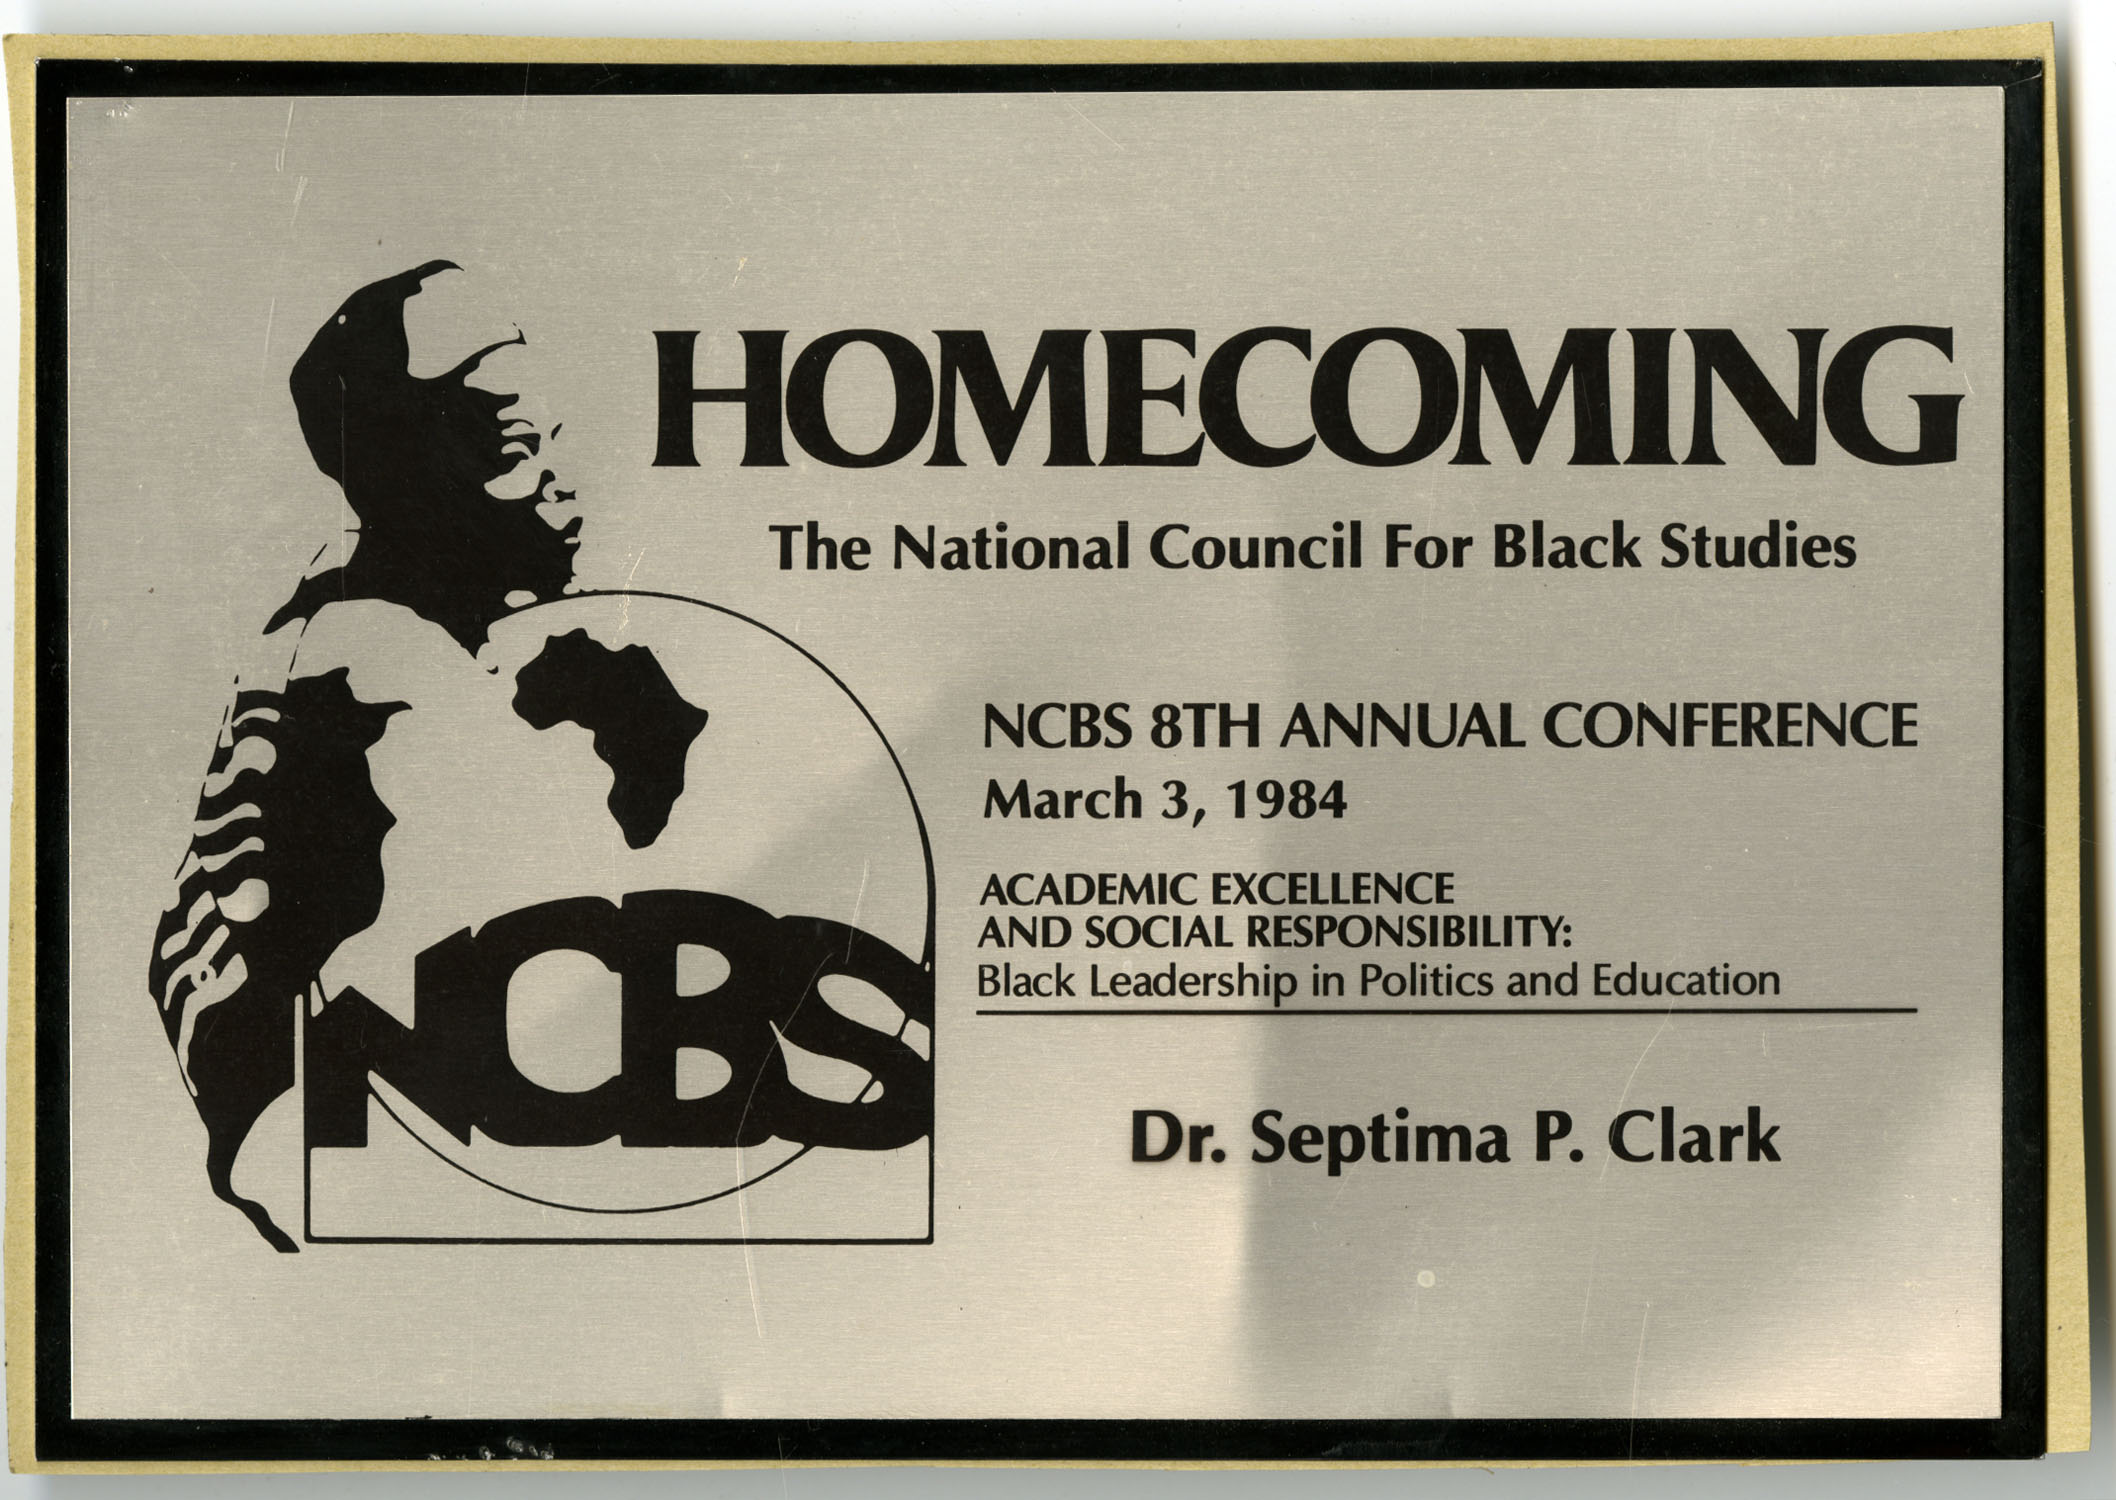 Plaque, March 3, 1984